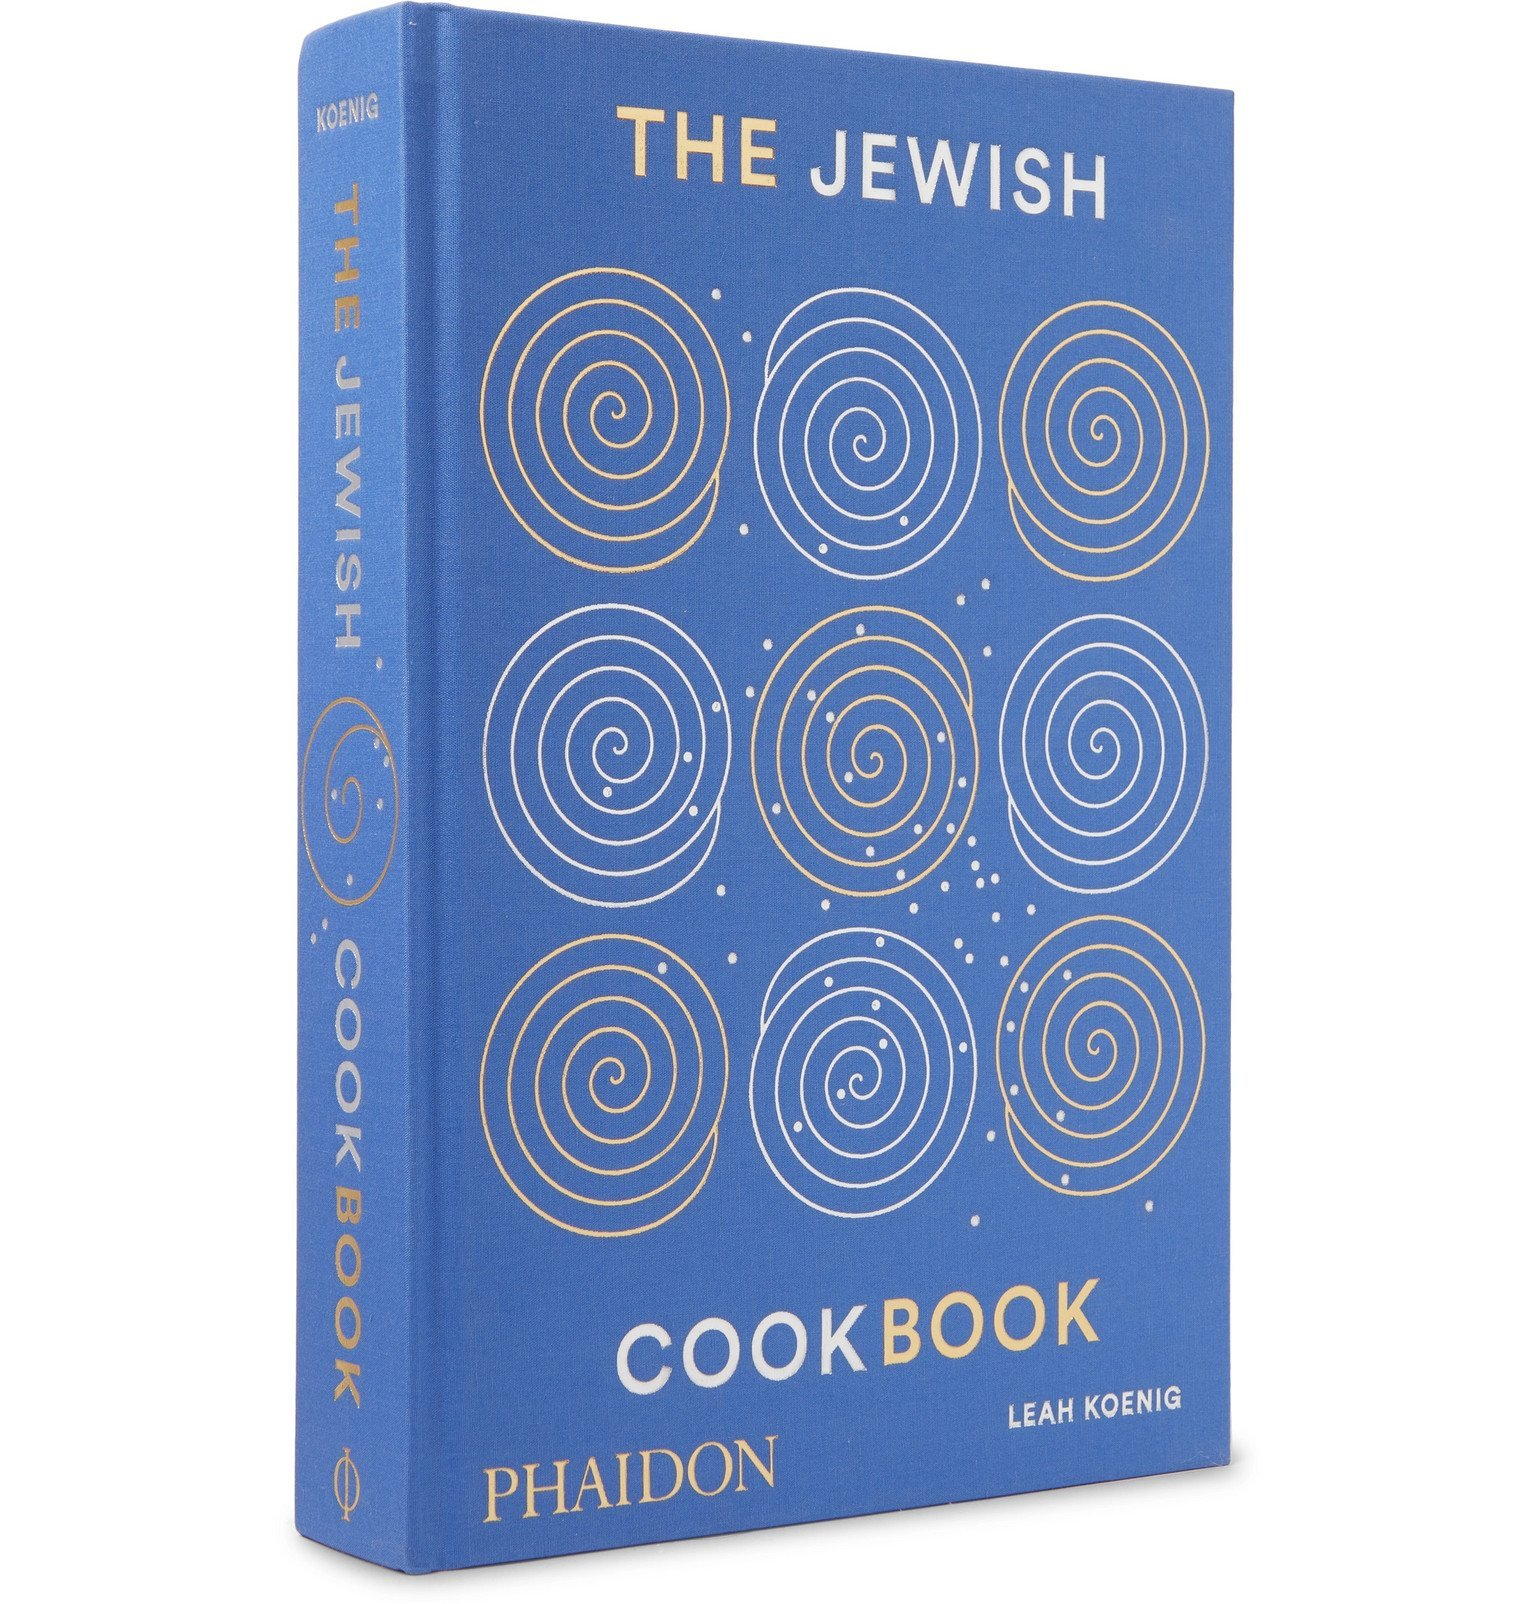 Photo: Phaidon - The Jewish Cookbook Hardcover Book - Blue